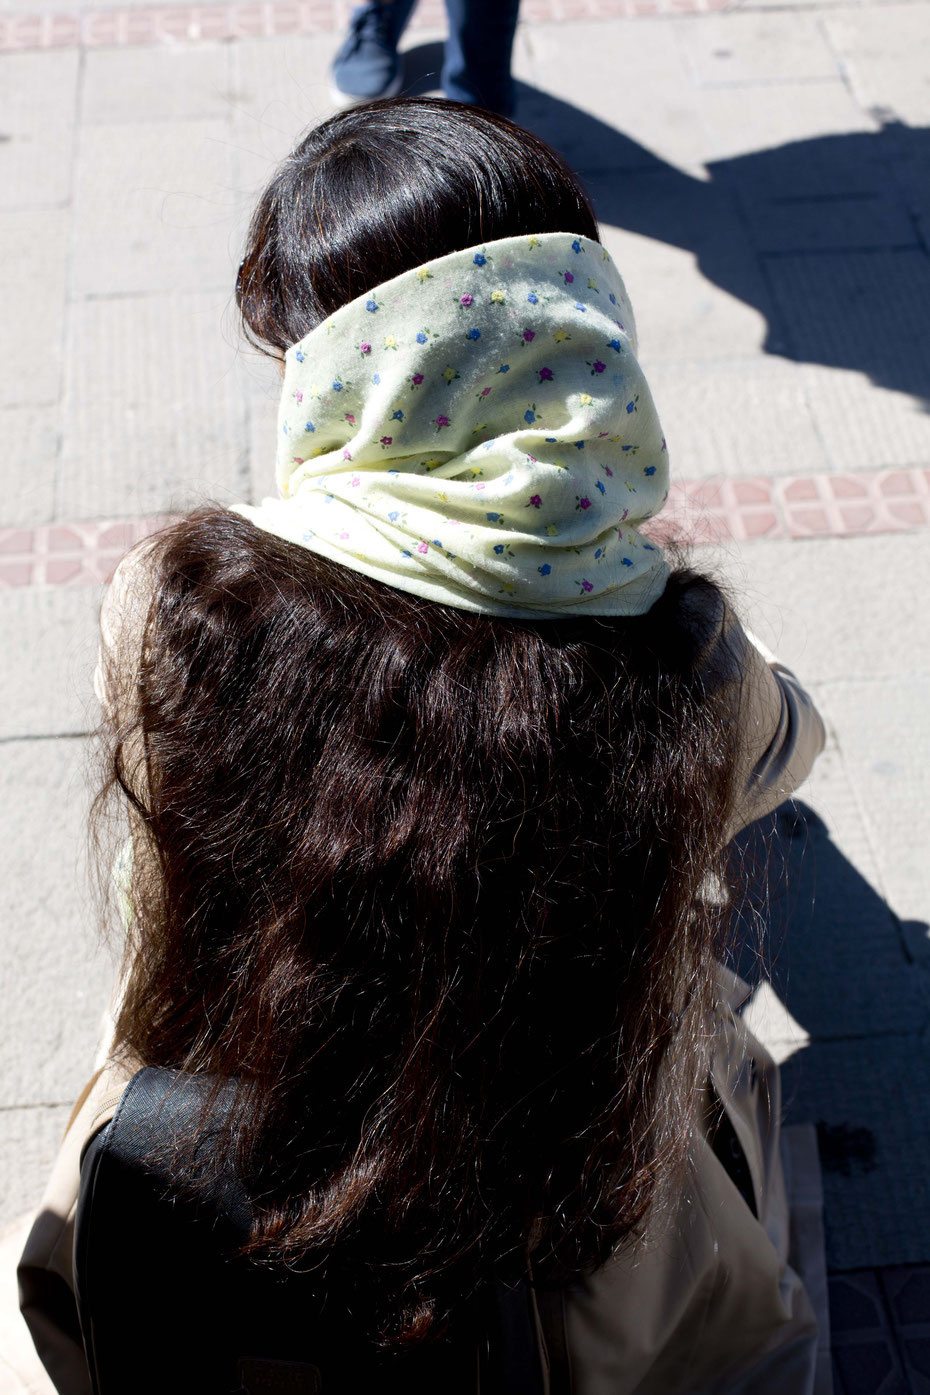 Hijab (more an insult because the Hijab is supposed to cover your hair), Tabriz, Iran